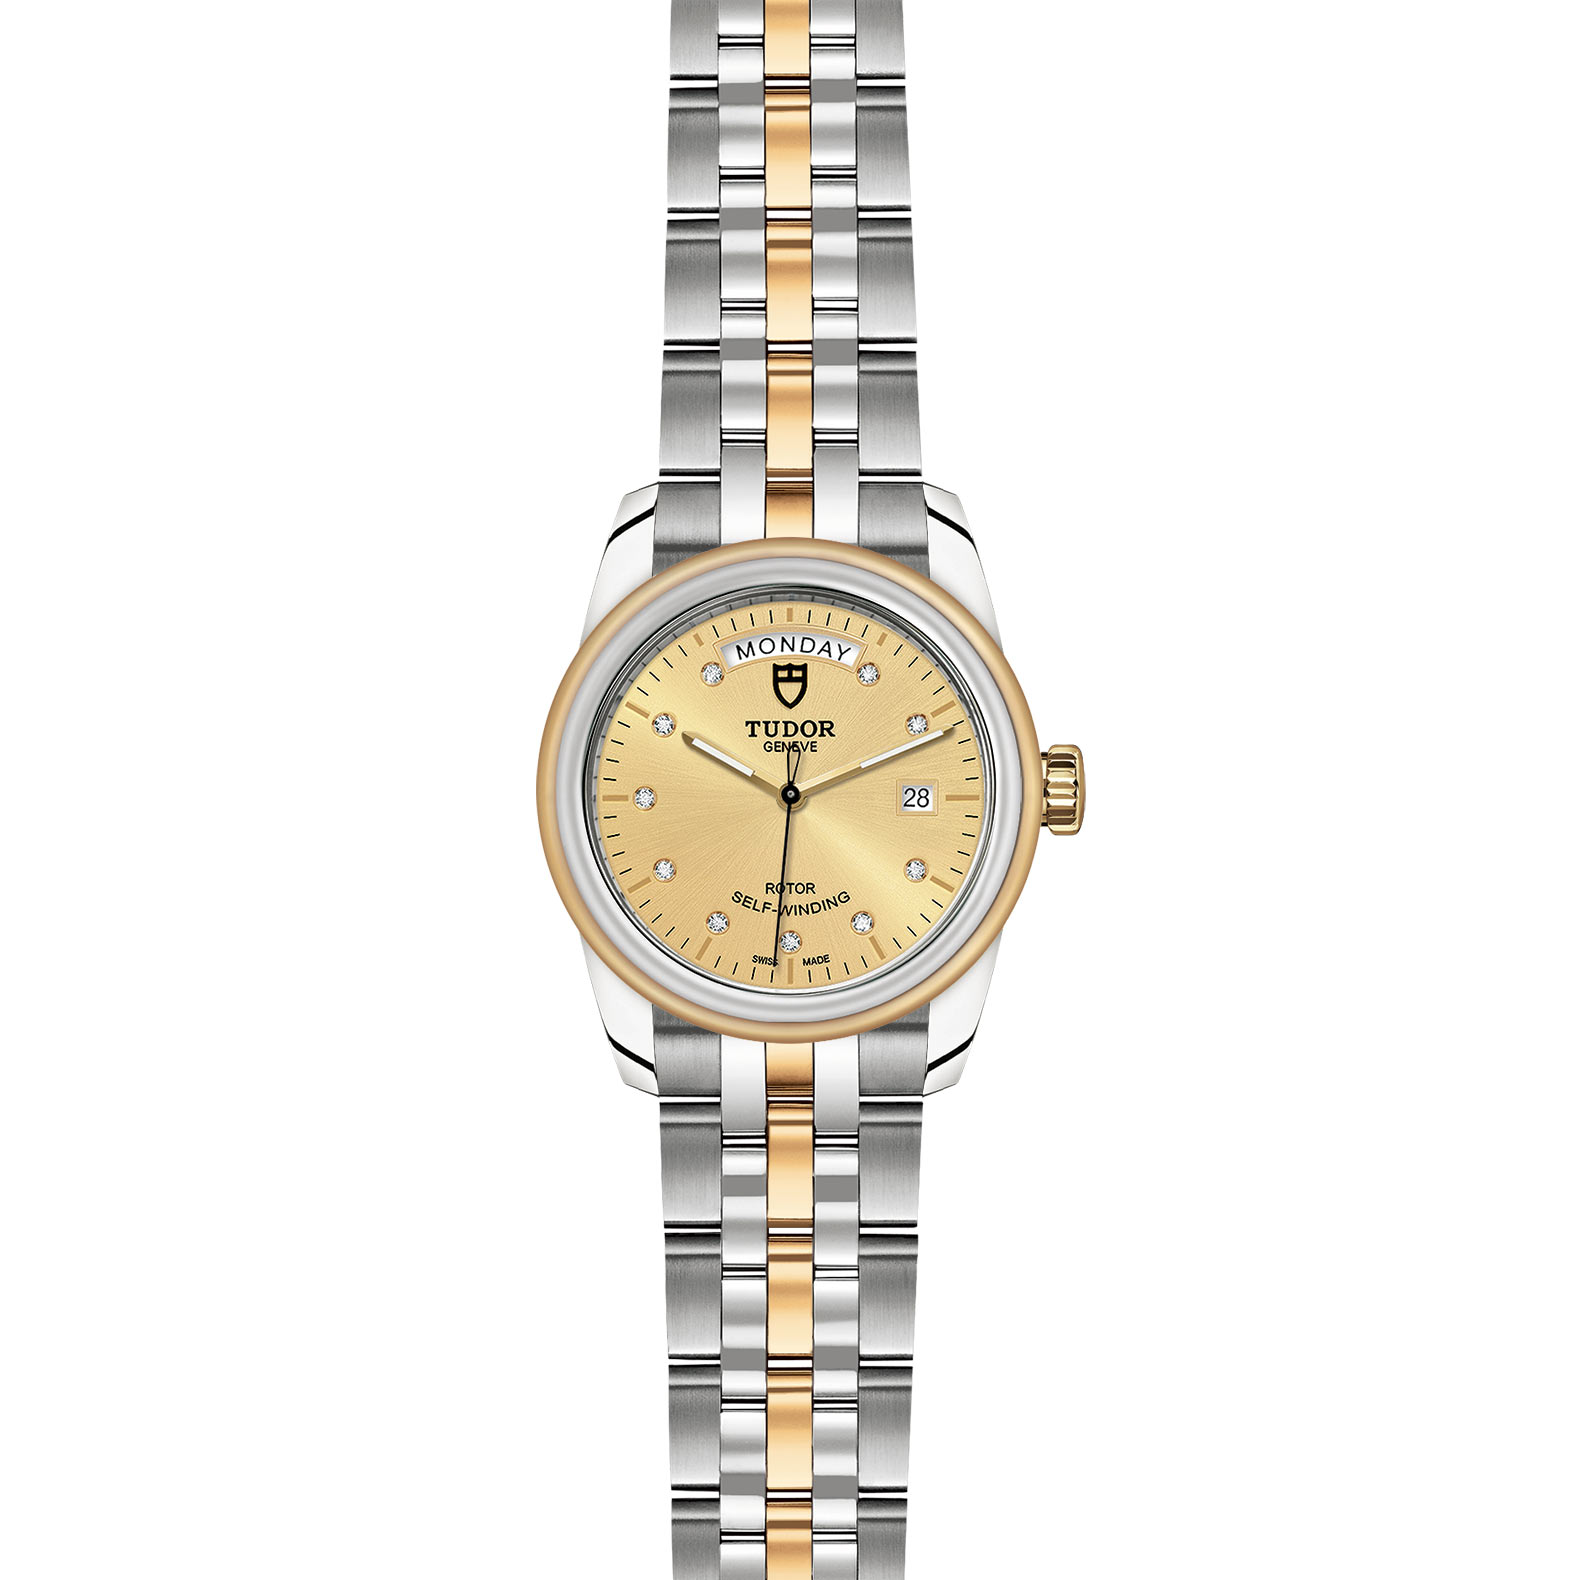 TUDOR Glamour Date Day M56003 0006 Frontfacing